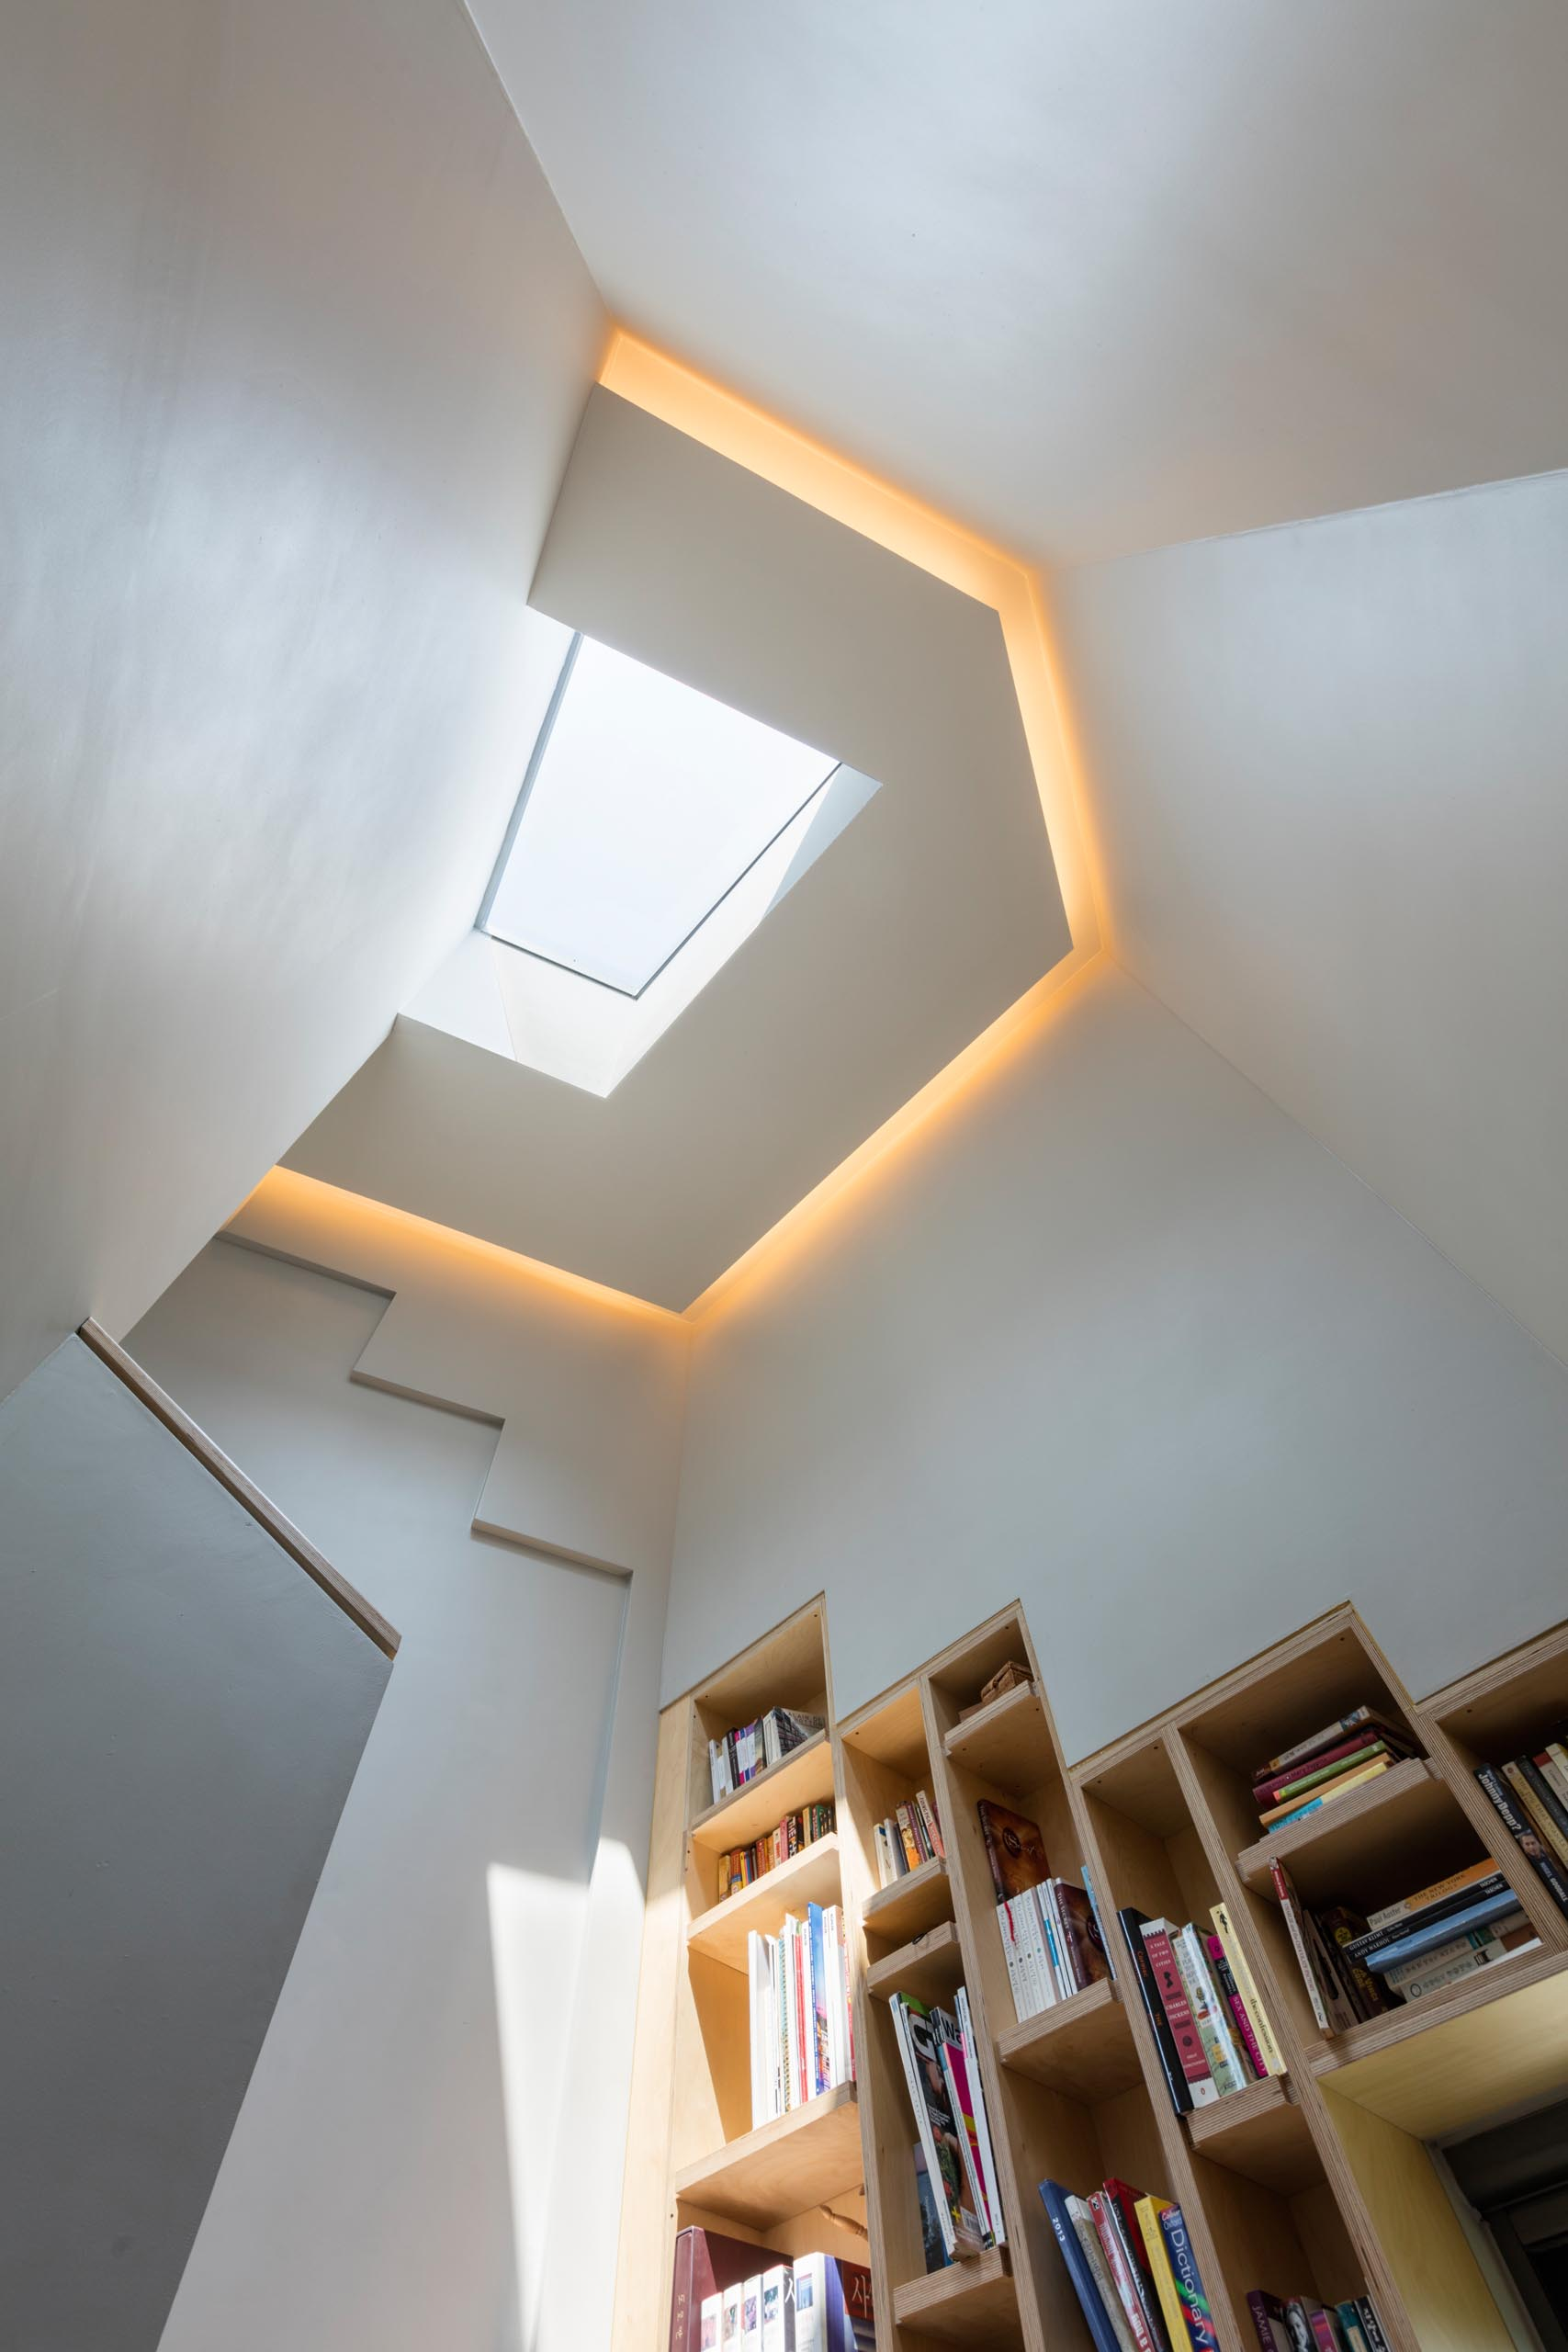 A modern home with a skylight, hidden lighting, and built-in bookshelves.